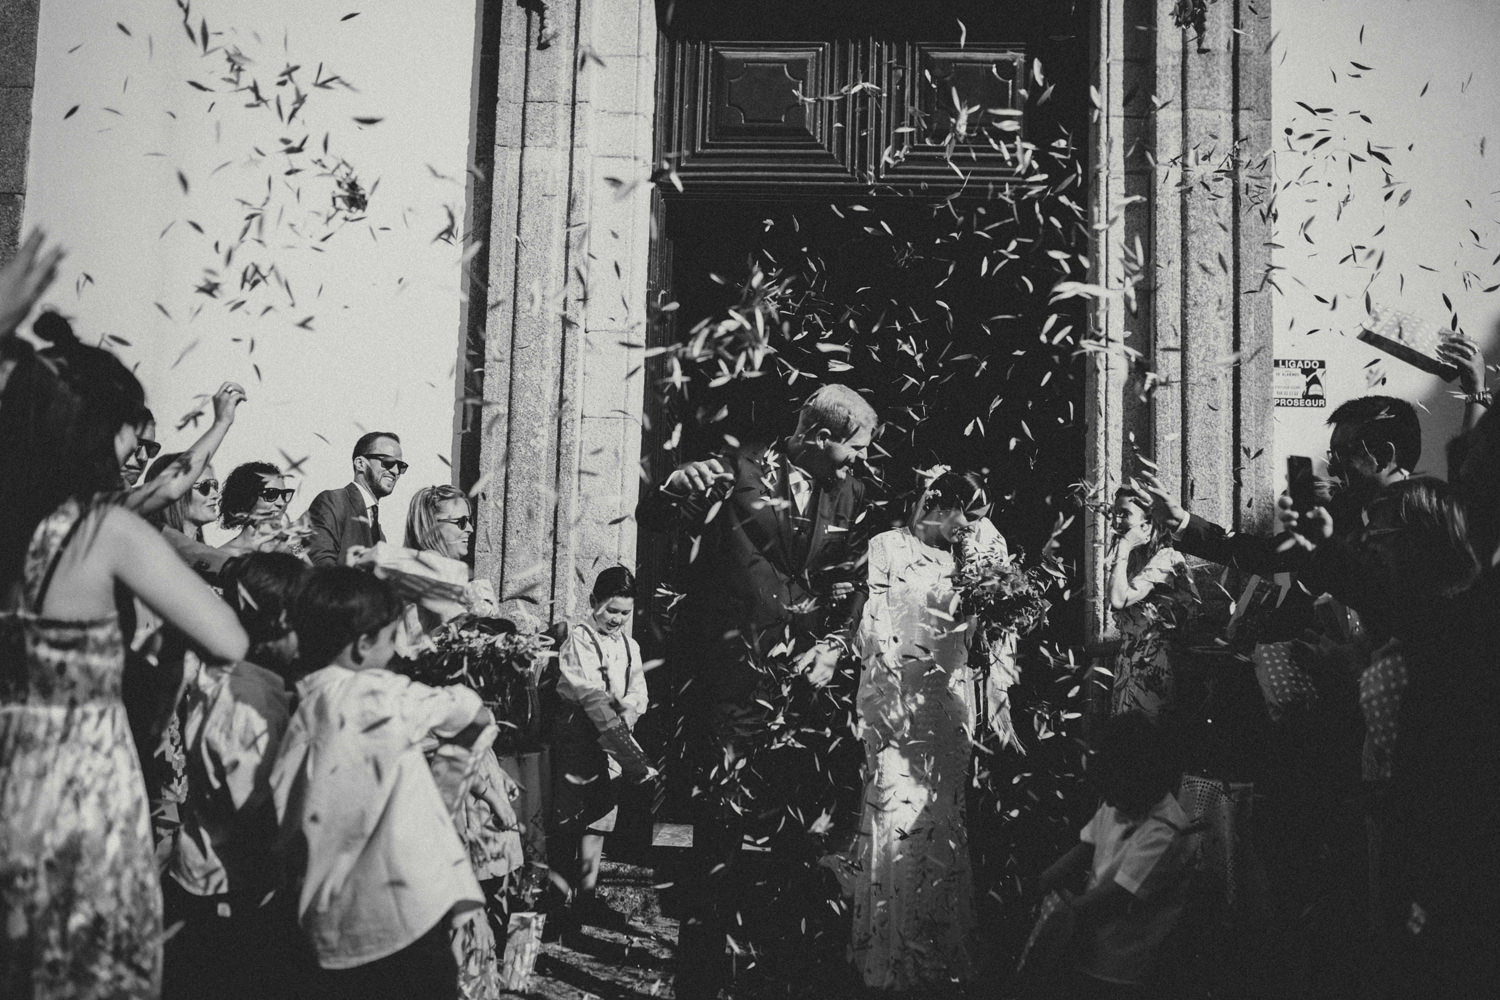 ceremony exit after chuch wedding ceremony north of portugal